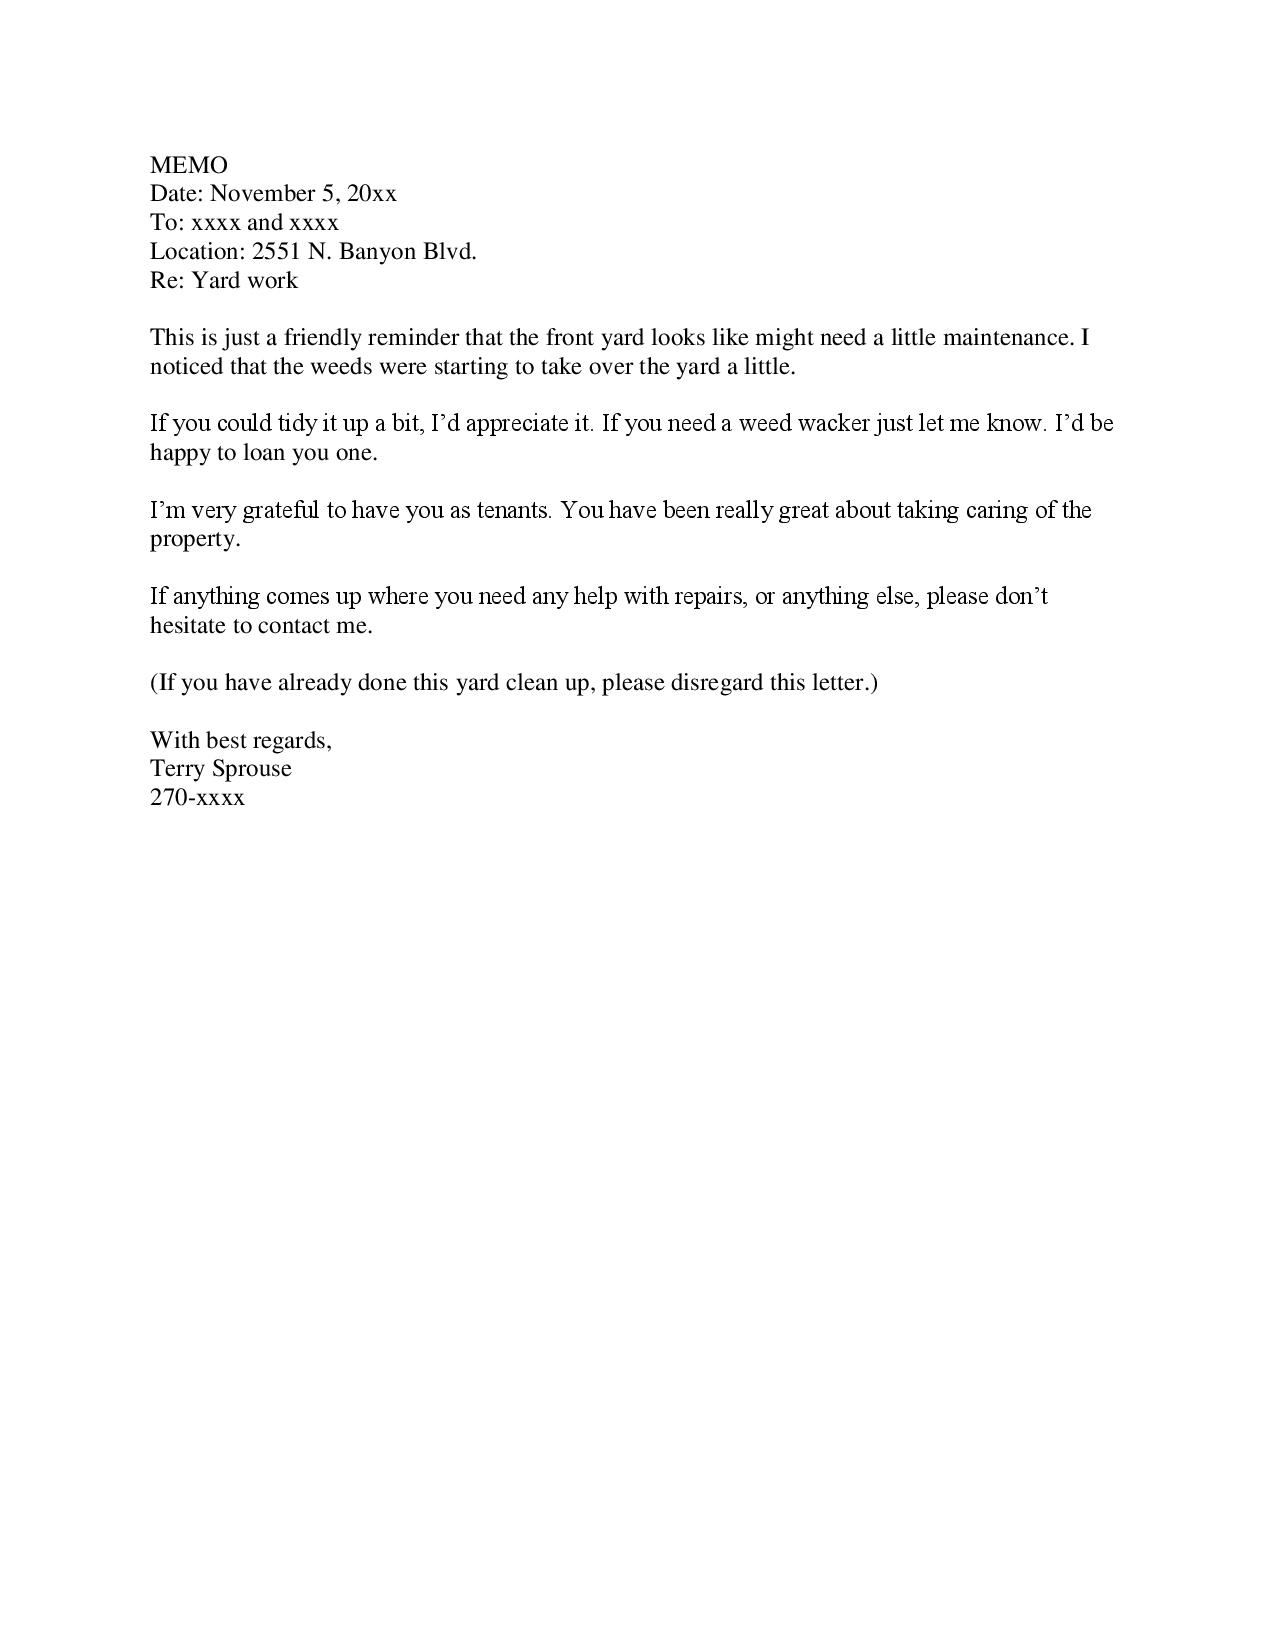 Character Reference Letter For Friend Buzzle November 171; 2012 171; Terry Sprouse